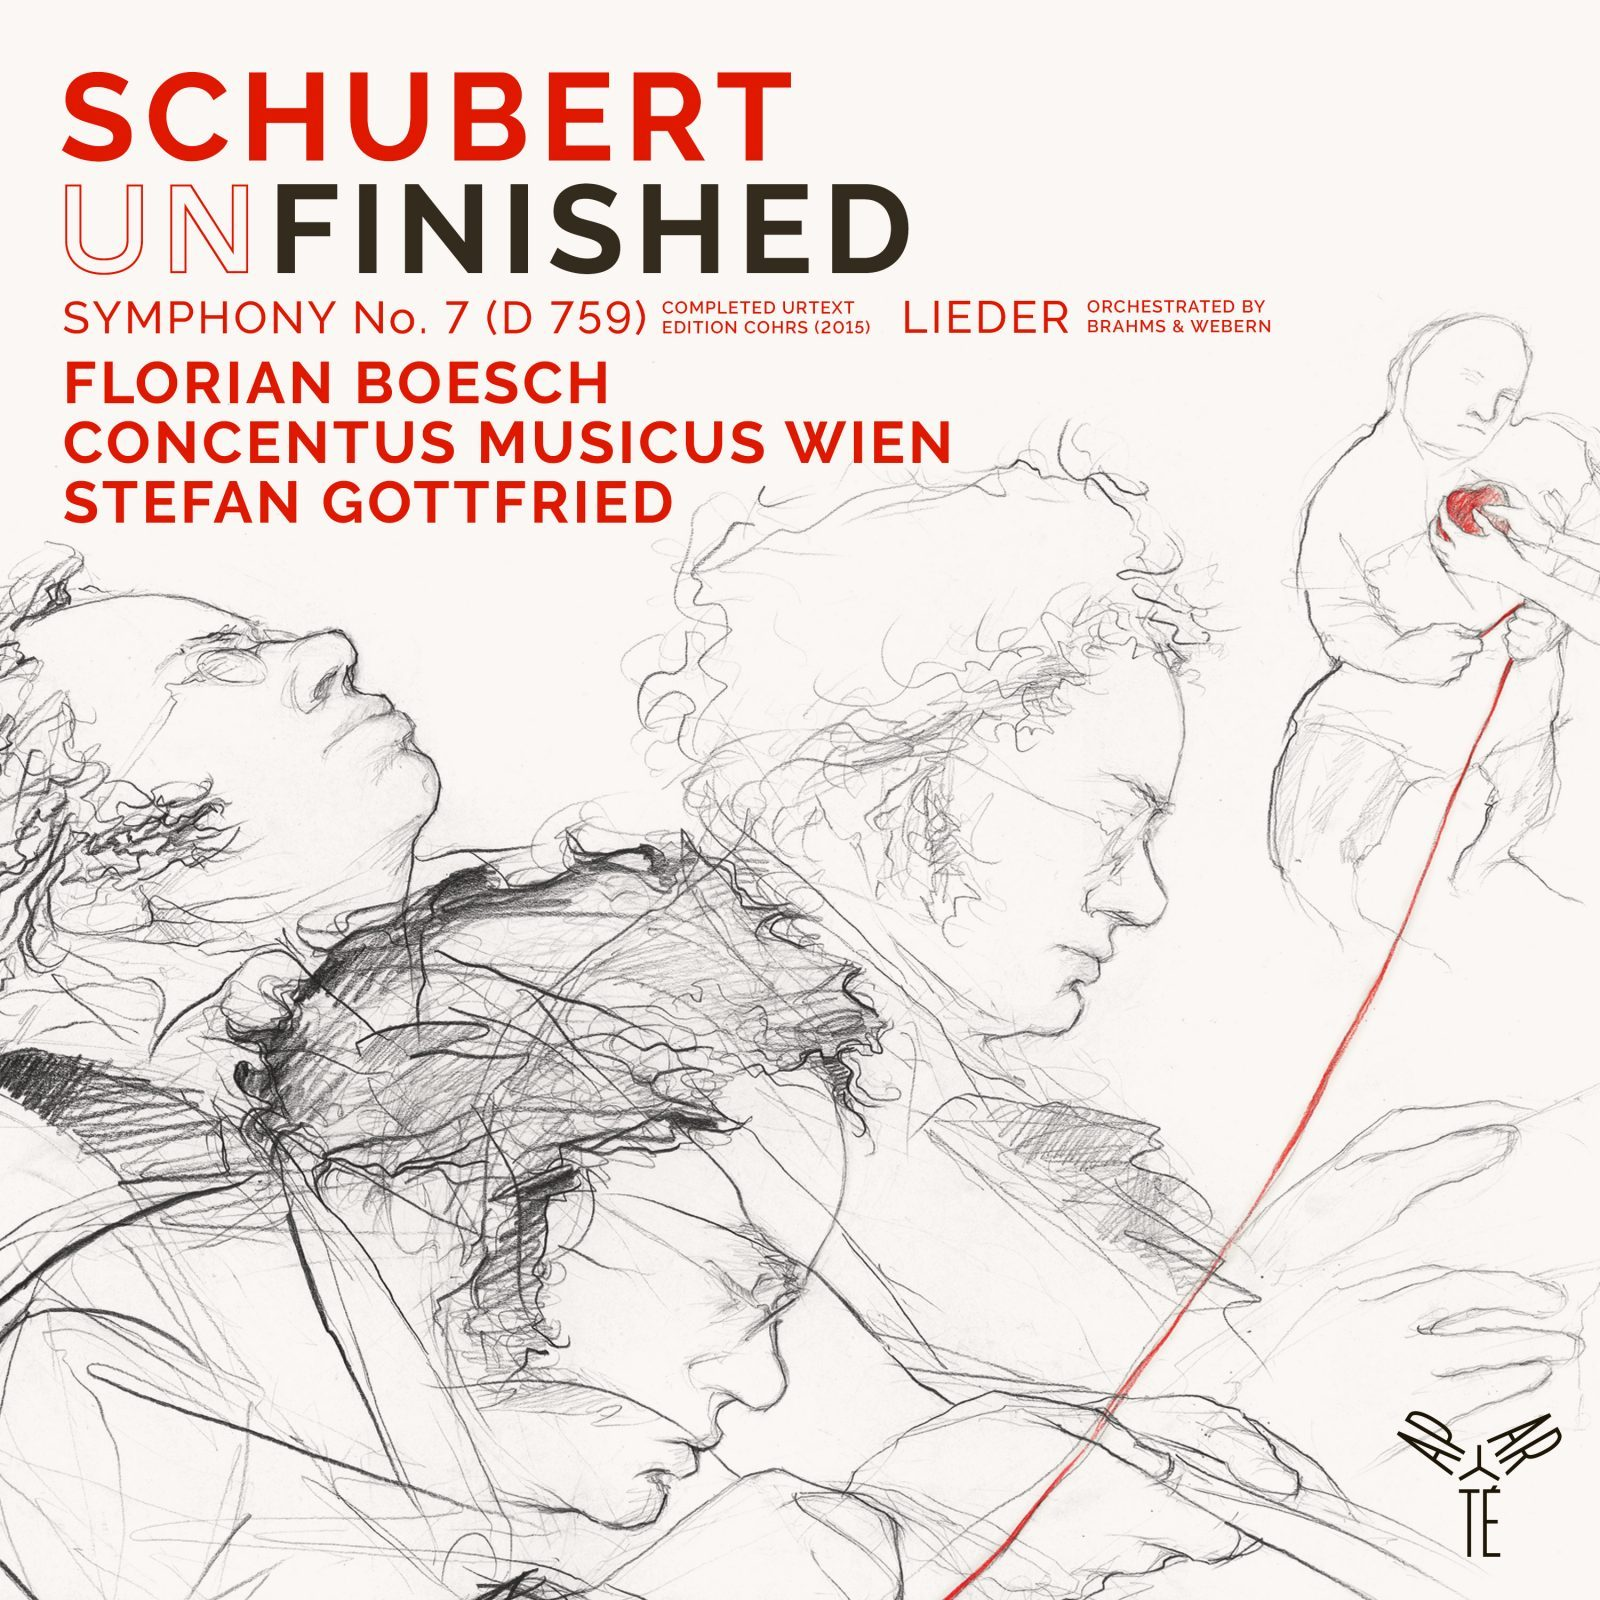 Schubert: Symphony No. 7 'Unfinished'